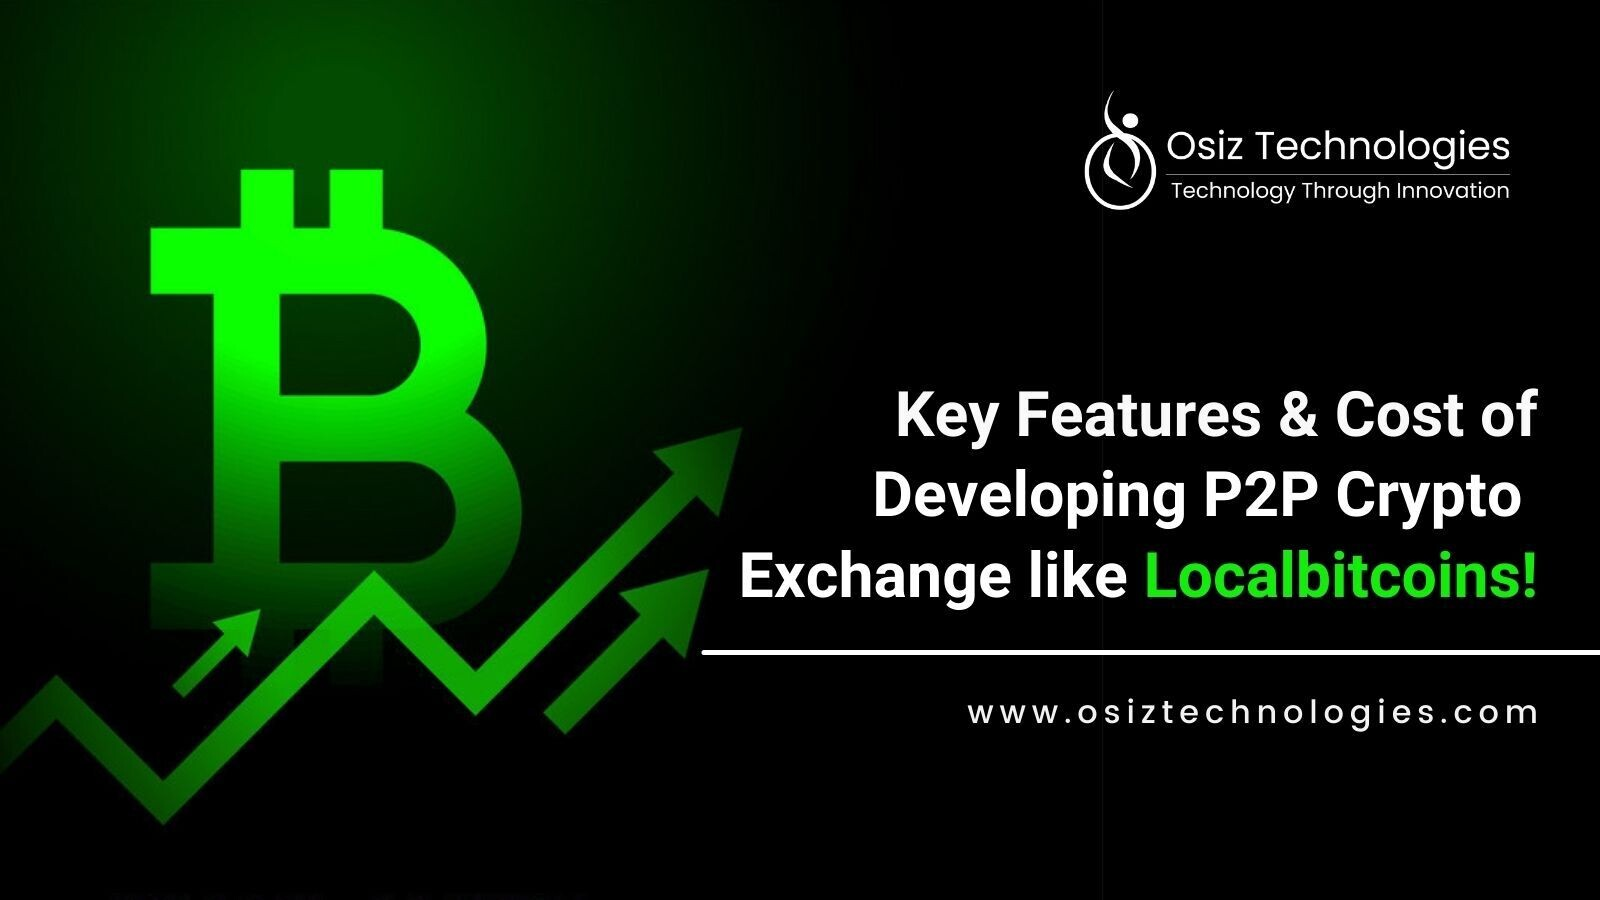 Key Features and Cost of Developing P2P Crypto Exchange like Localbitcoins